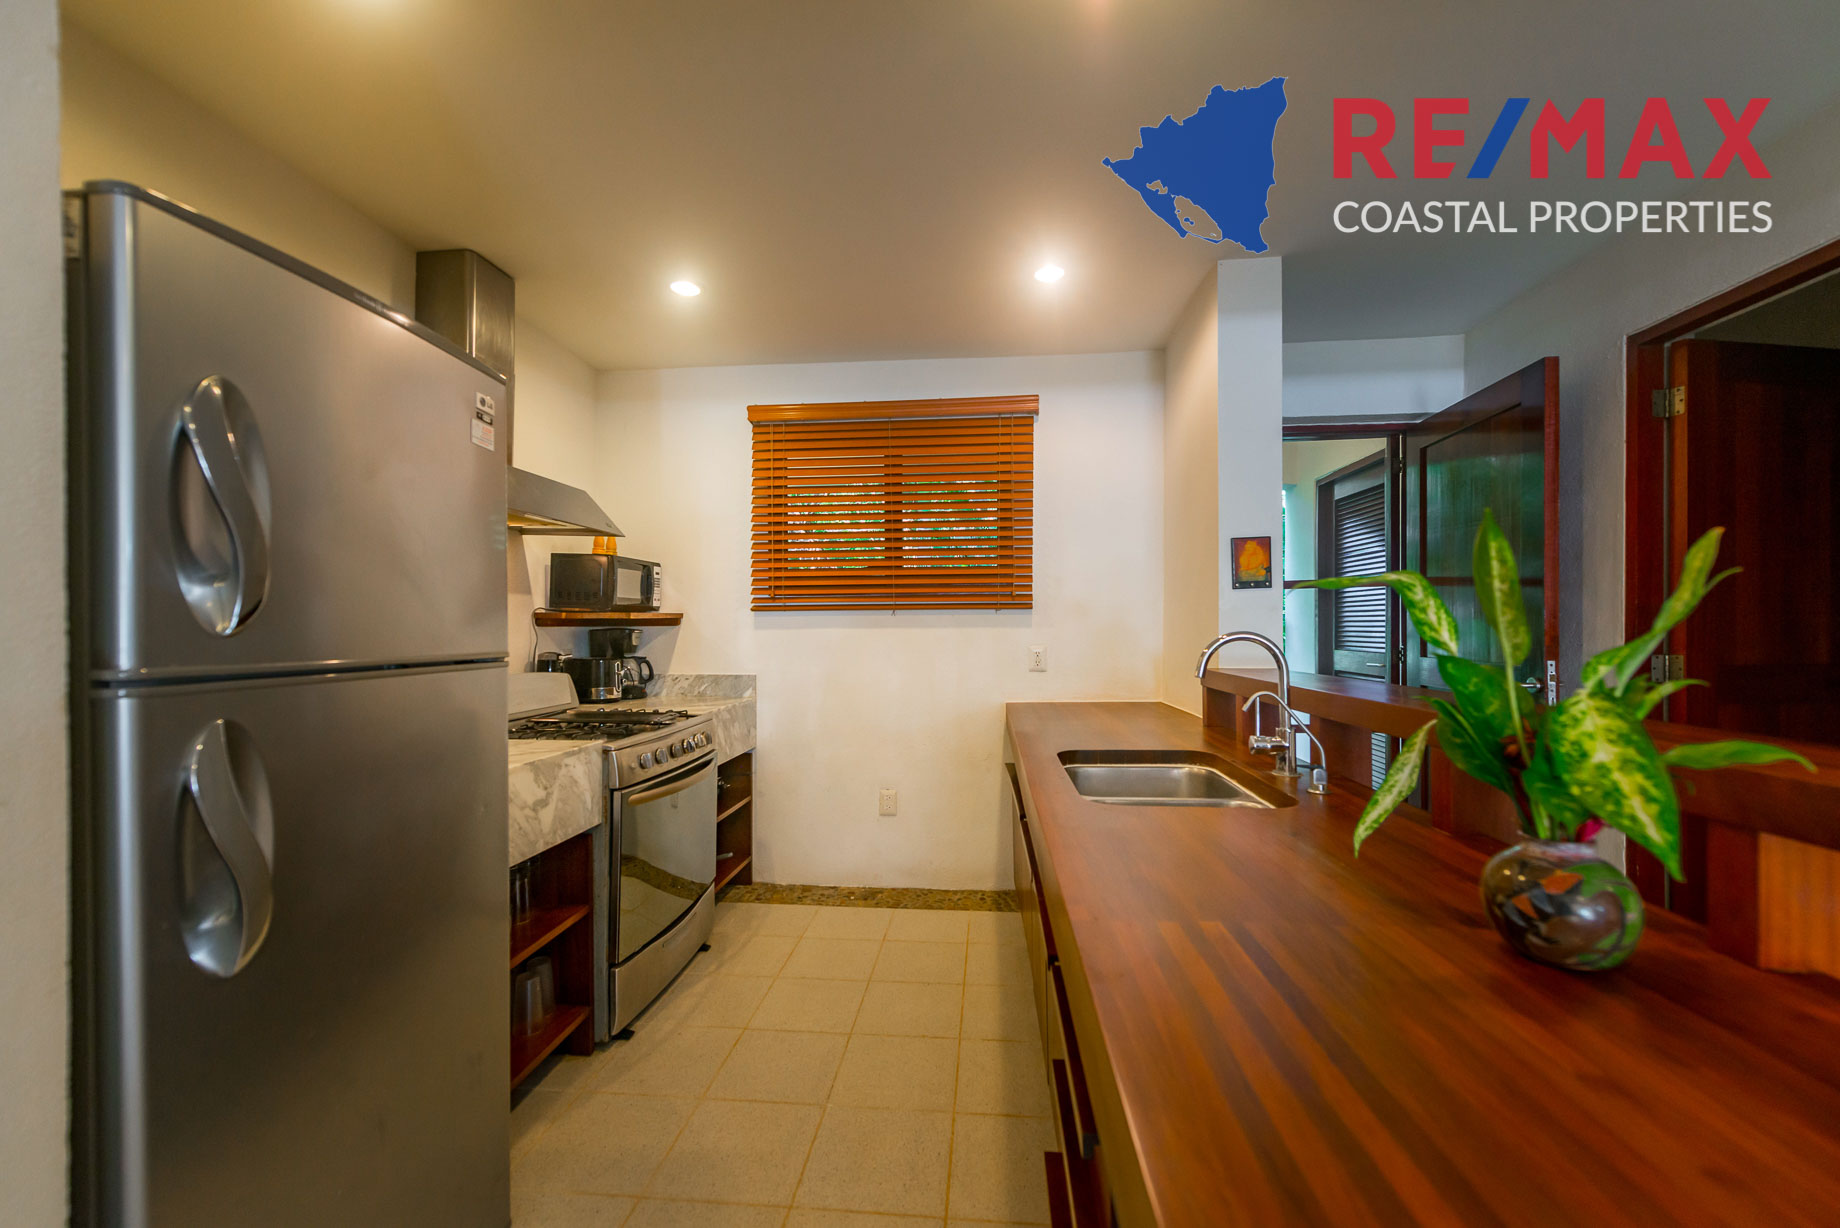 https://property-nicaragua.com/pedrodev/wp-content/uploads/2012/06/Playa-Coco-Townhome-2-REMAX-Coastal-Properties-6.jpg